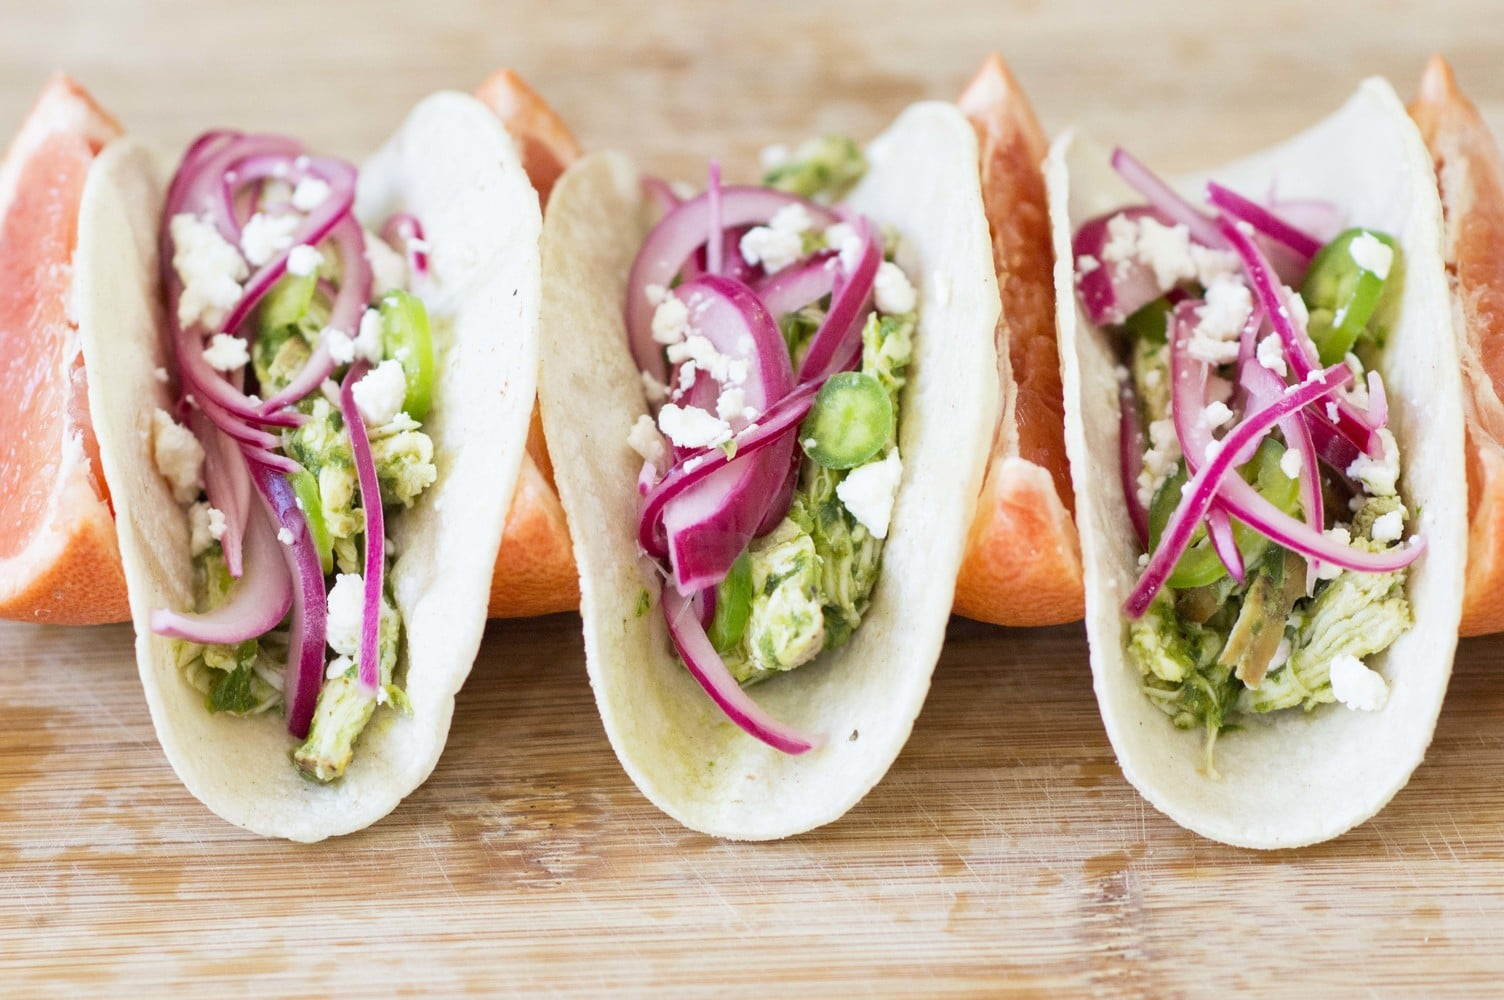 The Smoked Chicken Tacos with Grapefruit Basil Verde made and ready to eat